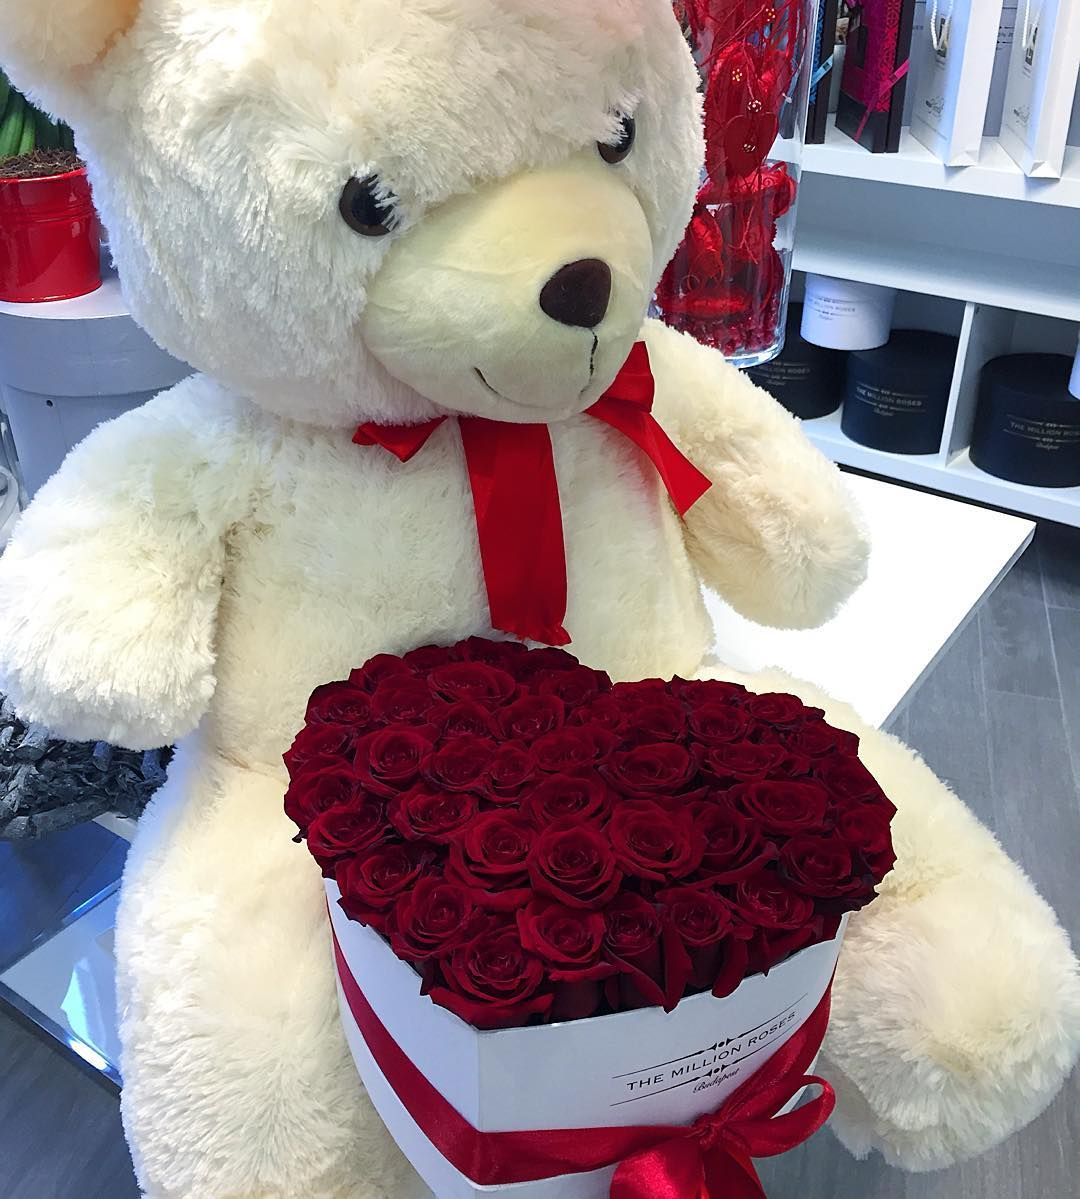 Our Limited Edition Valentine S Day Box Themillionroses Lovebox Valentine S Roses Teddy Bears Valentines Bear Valentines Valentine Day Boxes